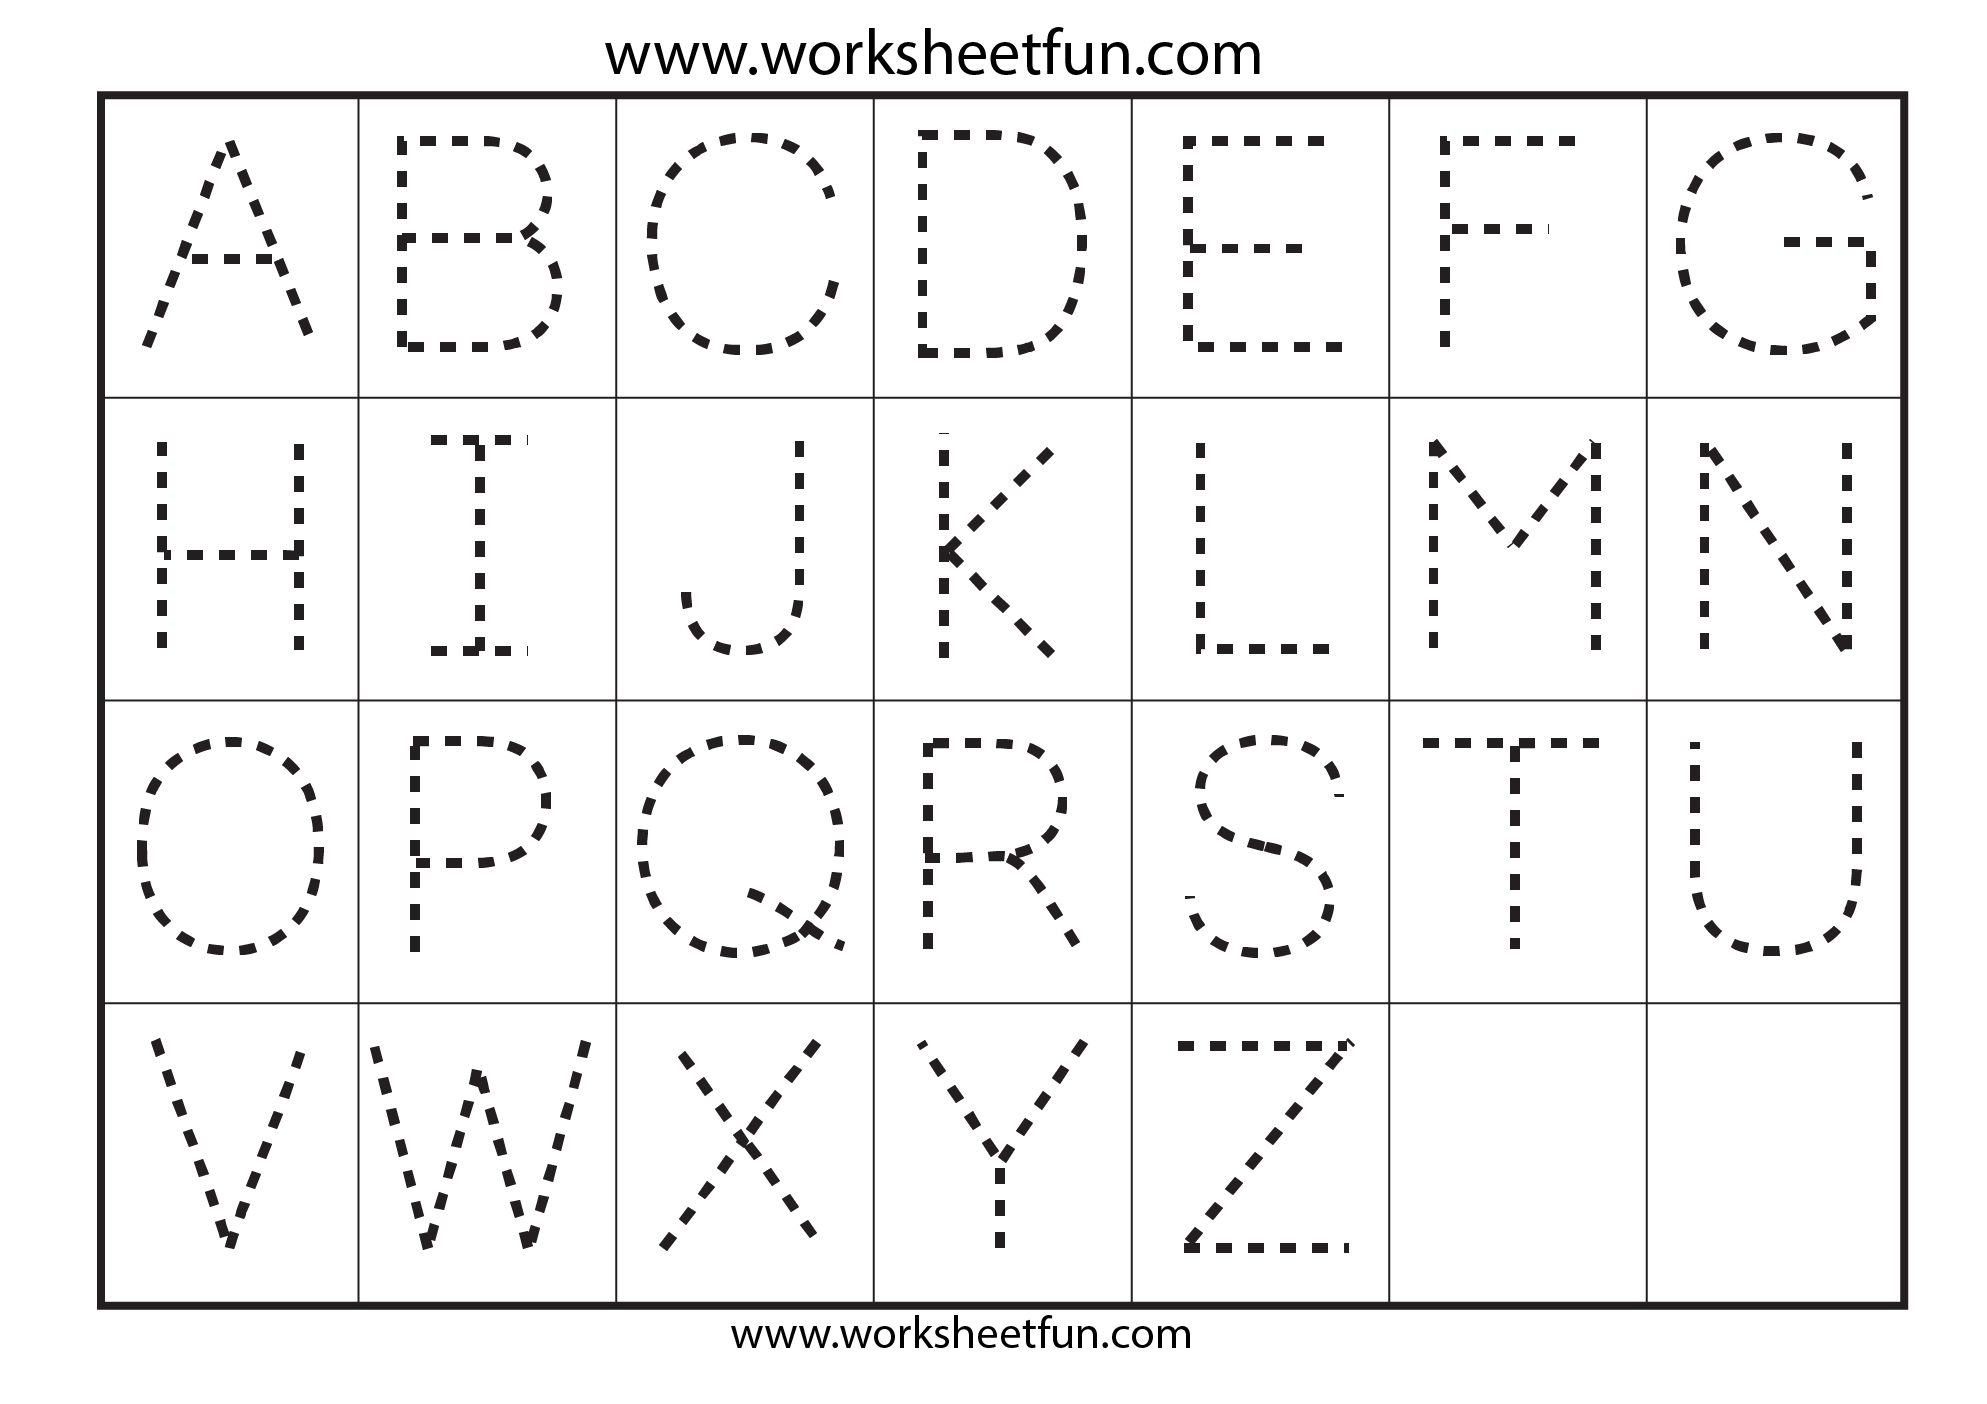 Worksheet Letter Tracing Worksheets letter tracing worksheets yelstk alphabet worksheet narrativamente